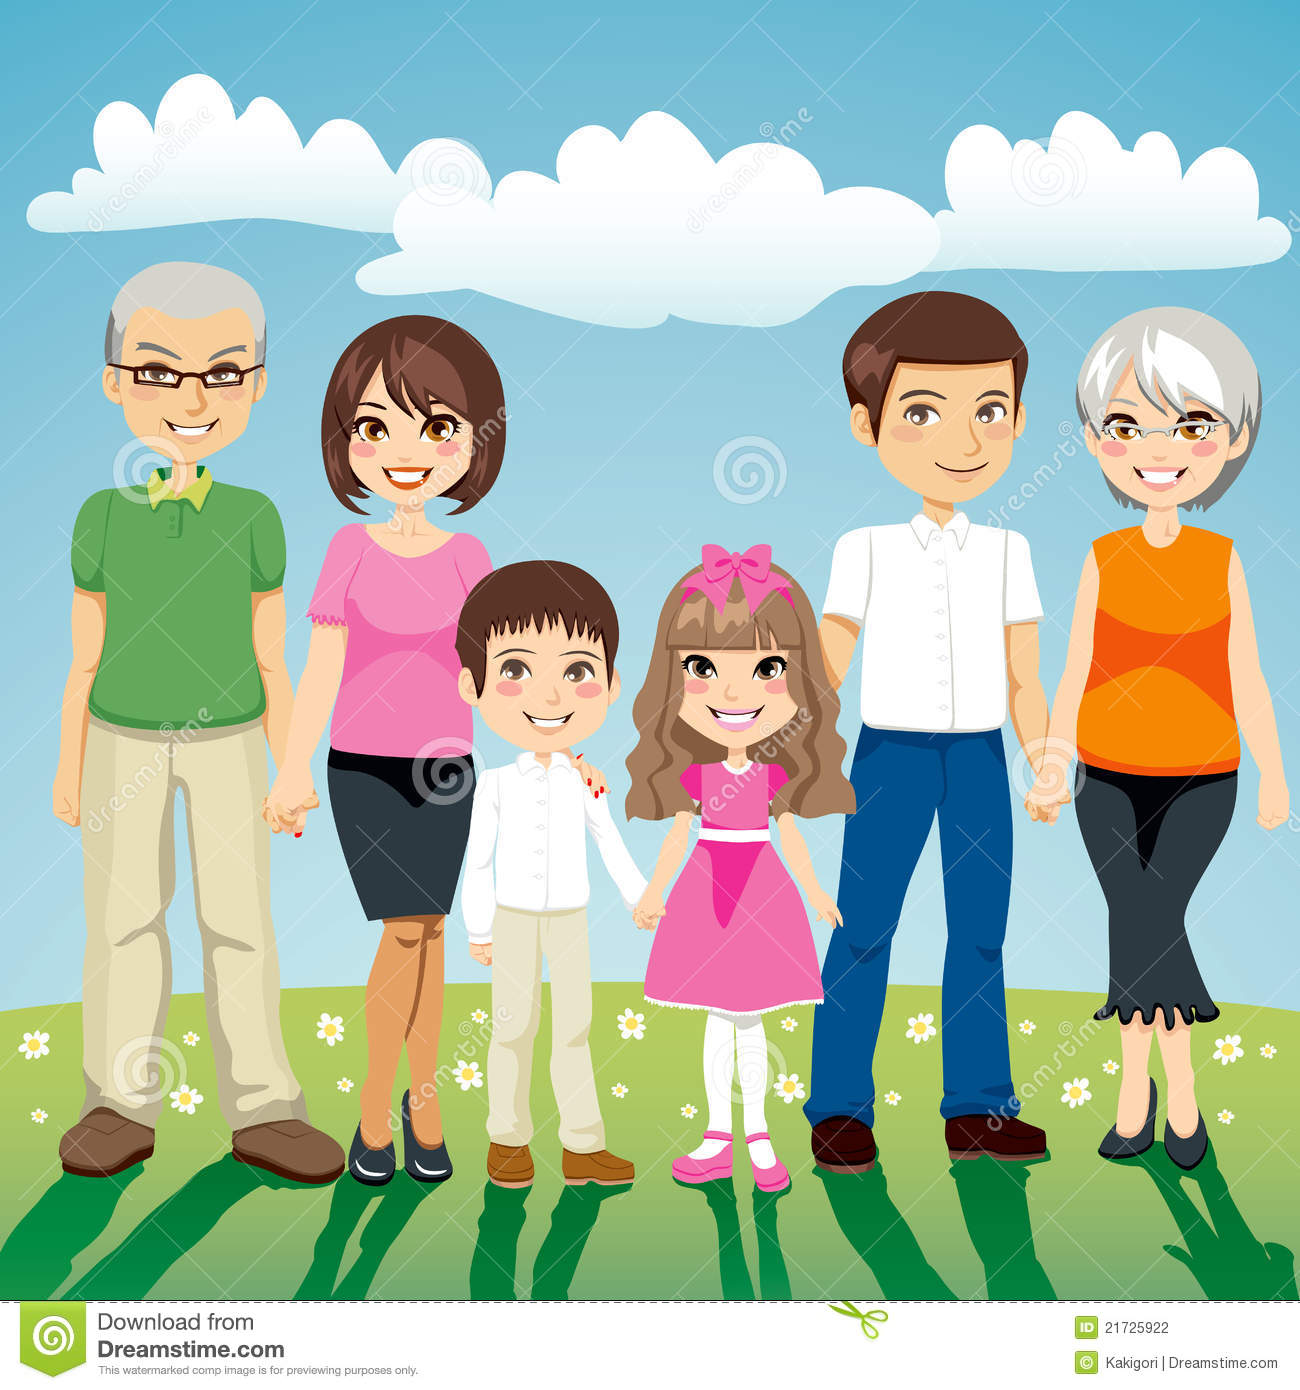 nuclear family extended family essay The nuclear family was a bonding only between the parents and their children despite some distinct disadvantages the extended family would be my choice any day and in any place how to cite this page.